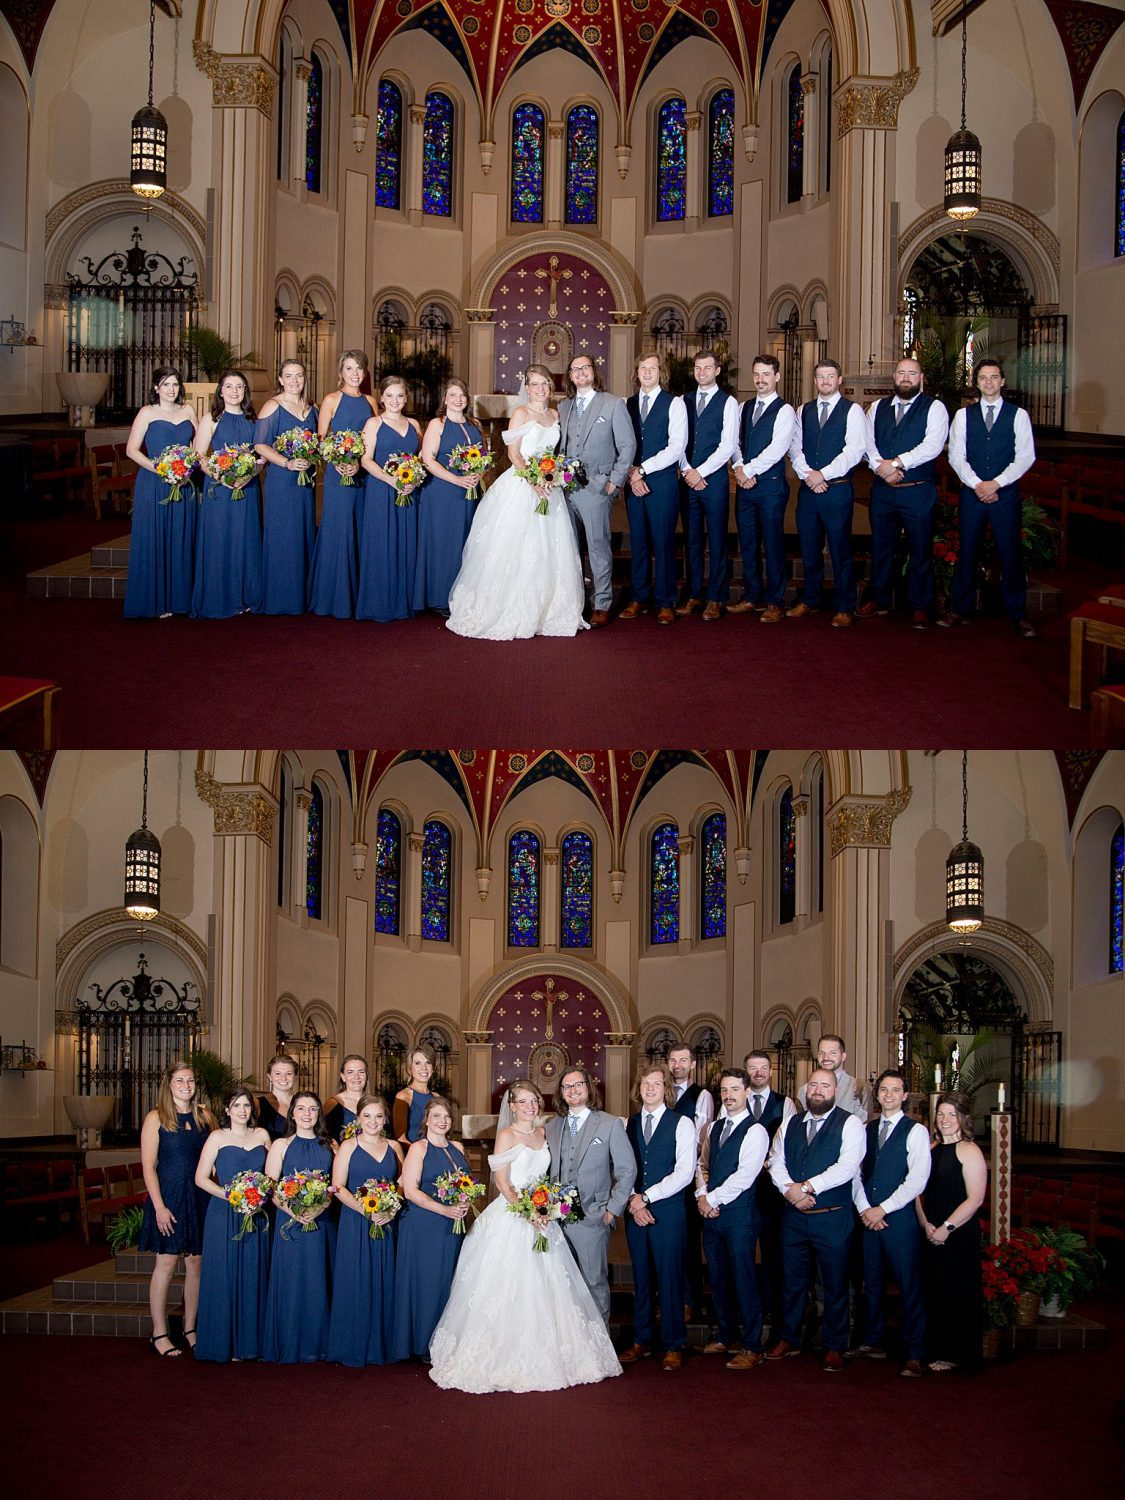 The wedding party stands for a formal portrait at the altar of St Ambrose Cathedral in Des Moines.